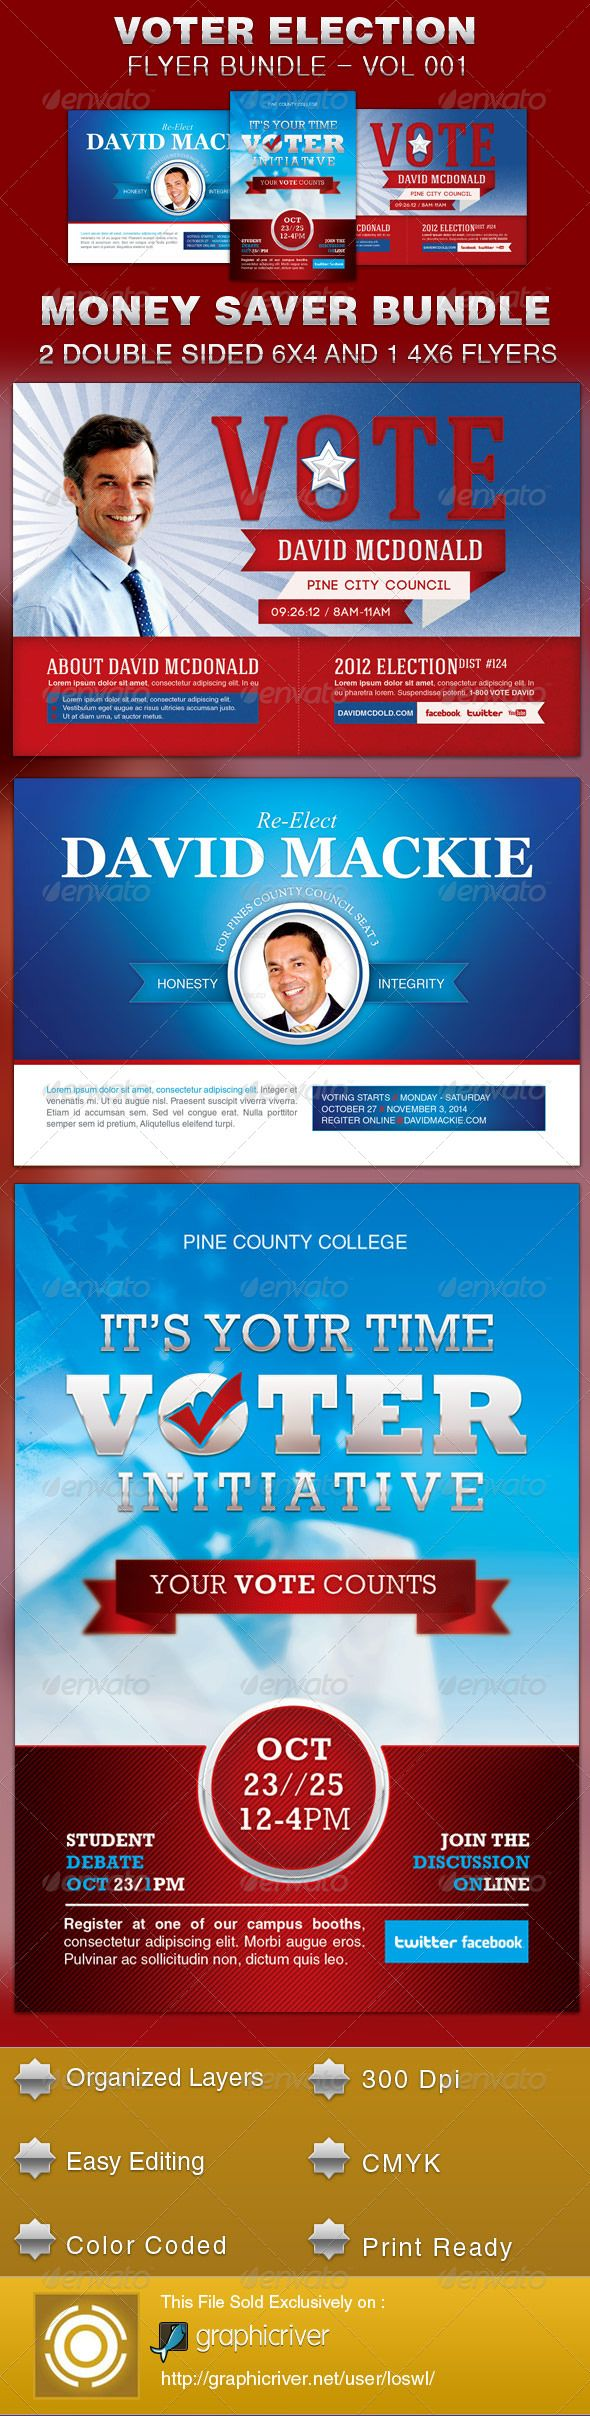 40 best images about campaign ideas on pinterest clinton for Voting flyer templates free